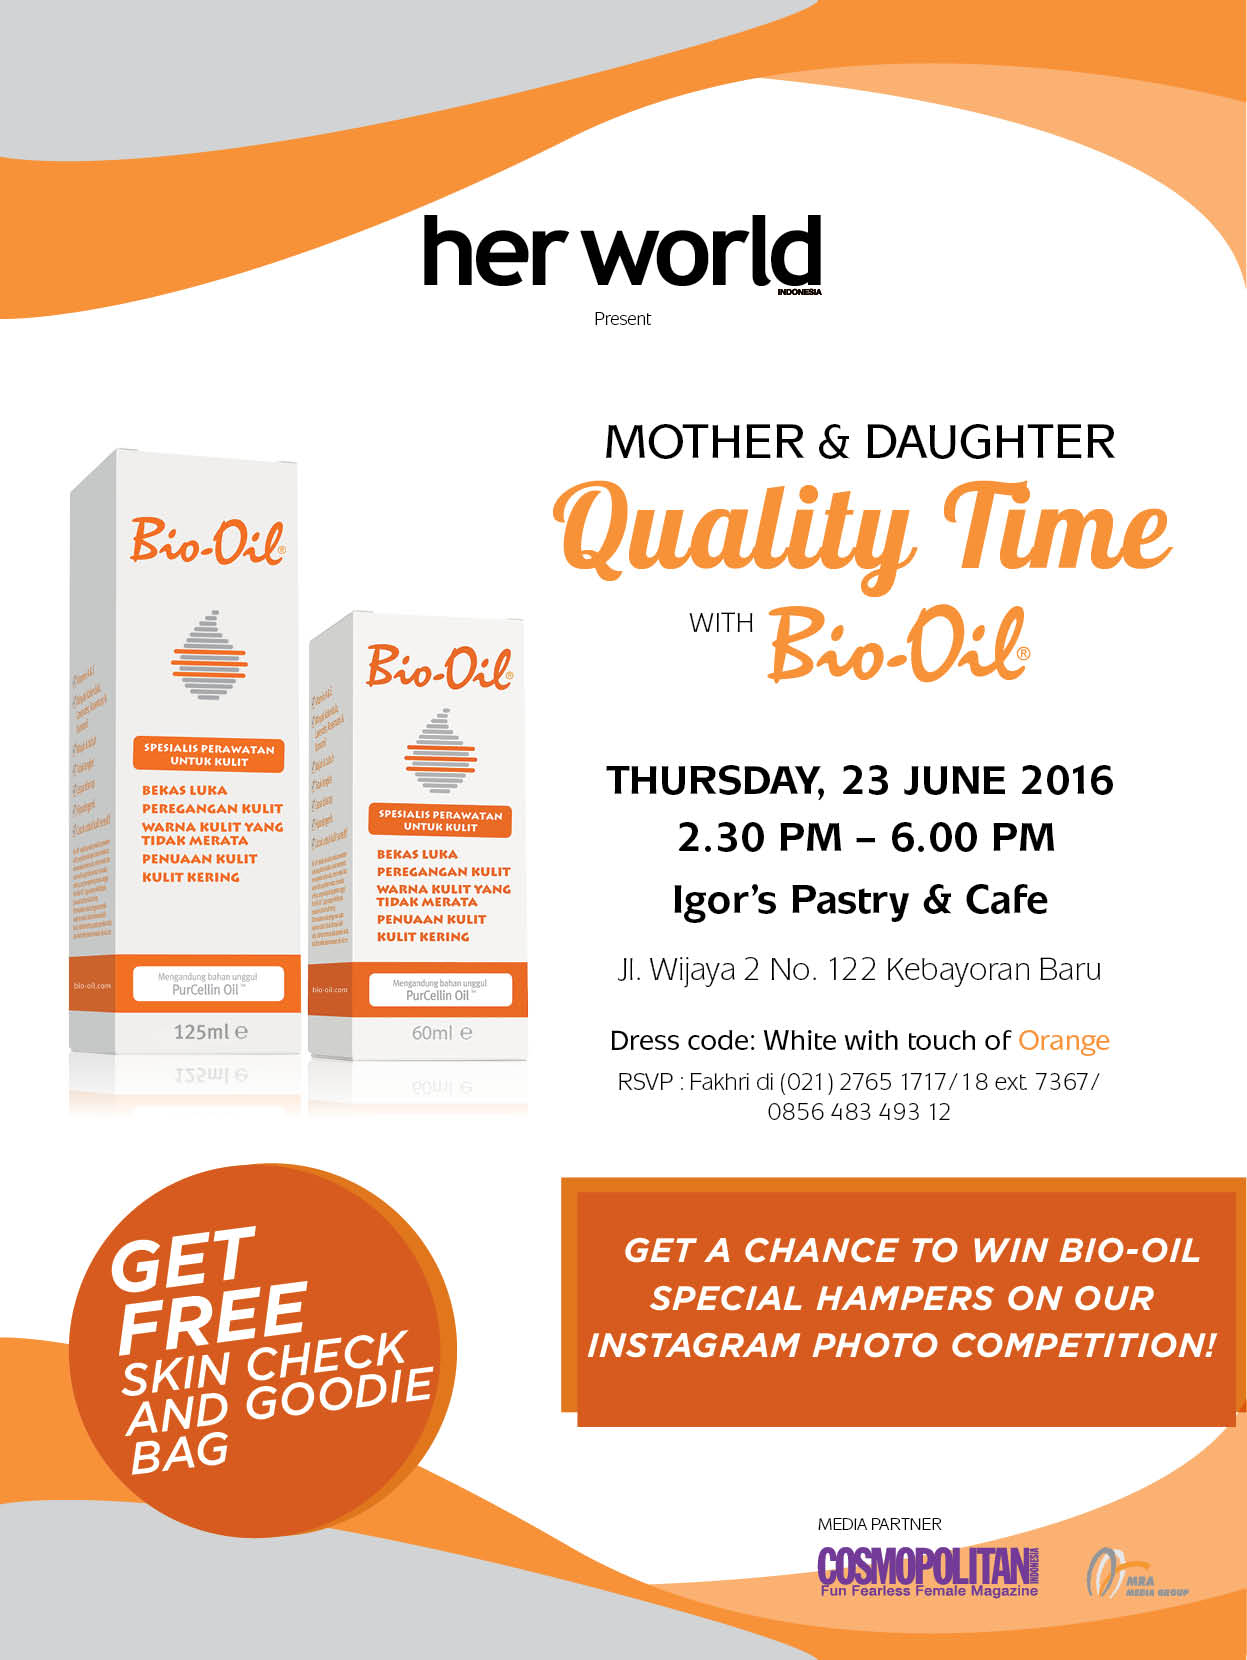 Mother & Daughter Quality Time with Bio-Oil